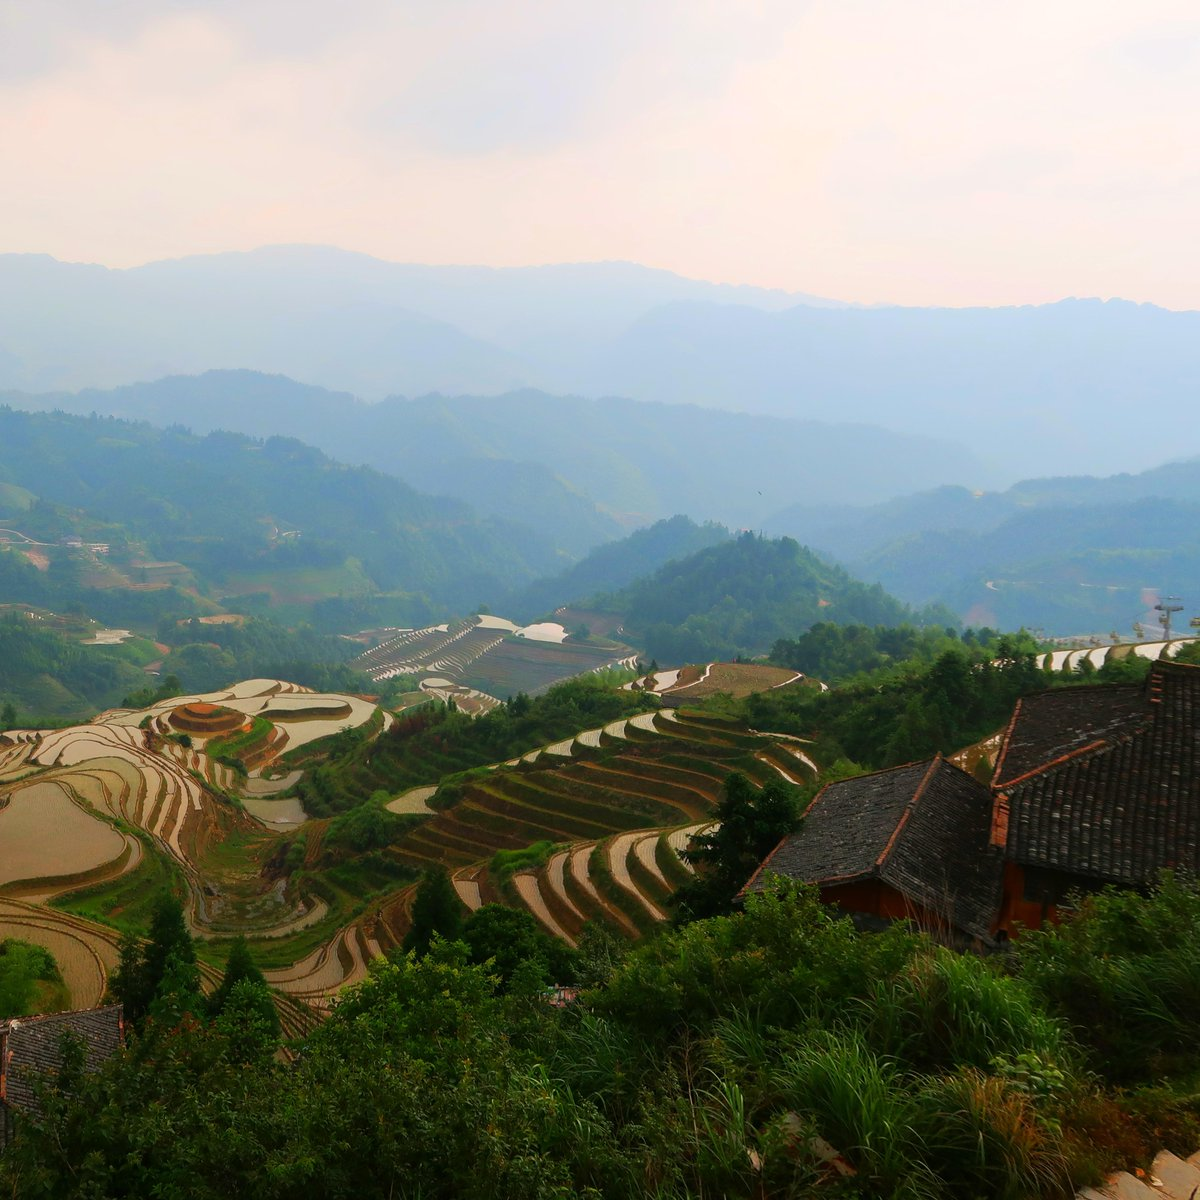 /u/_billmanning: Took this photo at the Longji Rice Terraces in China a few years ago - never had a more rewarding view at the end of a climb #travel #traveling #travelphotography #travelphoto #photo #exploring #ilovetravel #ilovetotravel #travelbucketlist #travelblogpic.twitter.com/a5OP8Vlgww